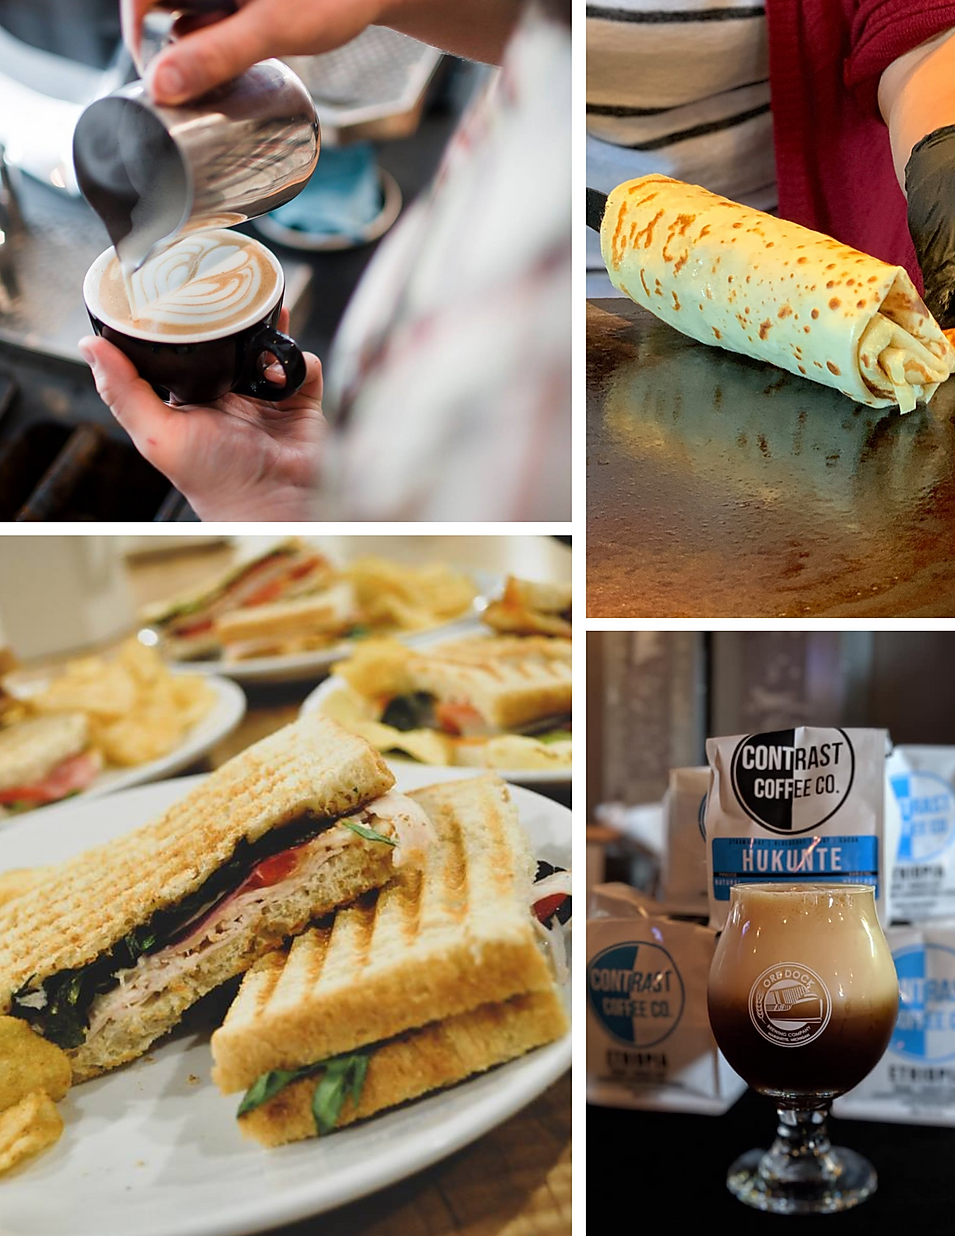 Contrast coffee espresso latte crepes bakery hours beans location deals Marquette Now